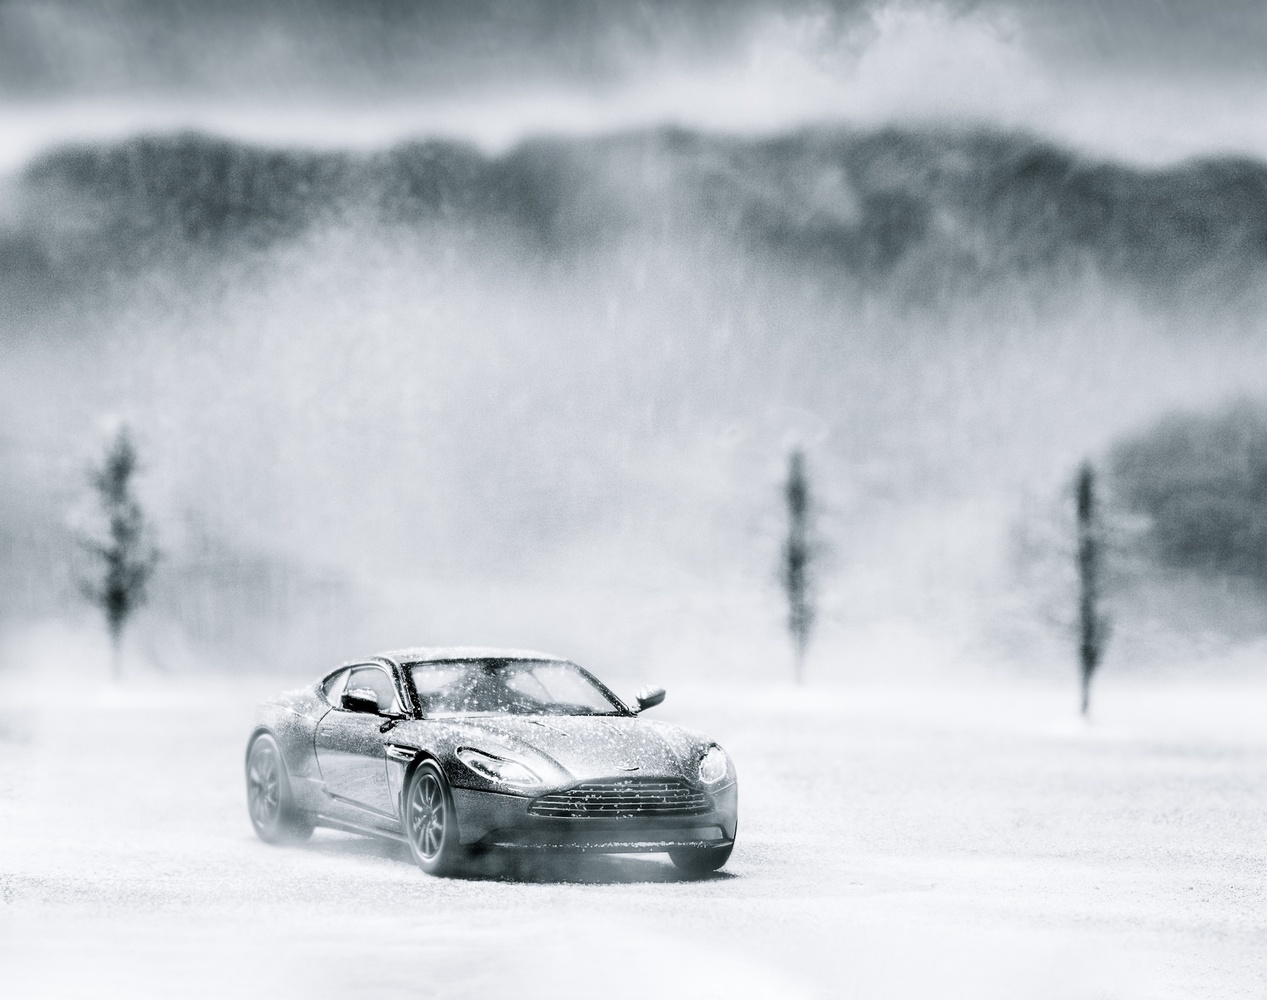 Frozen - Aston Martin DB11 - Scale Model by Chase Hirt